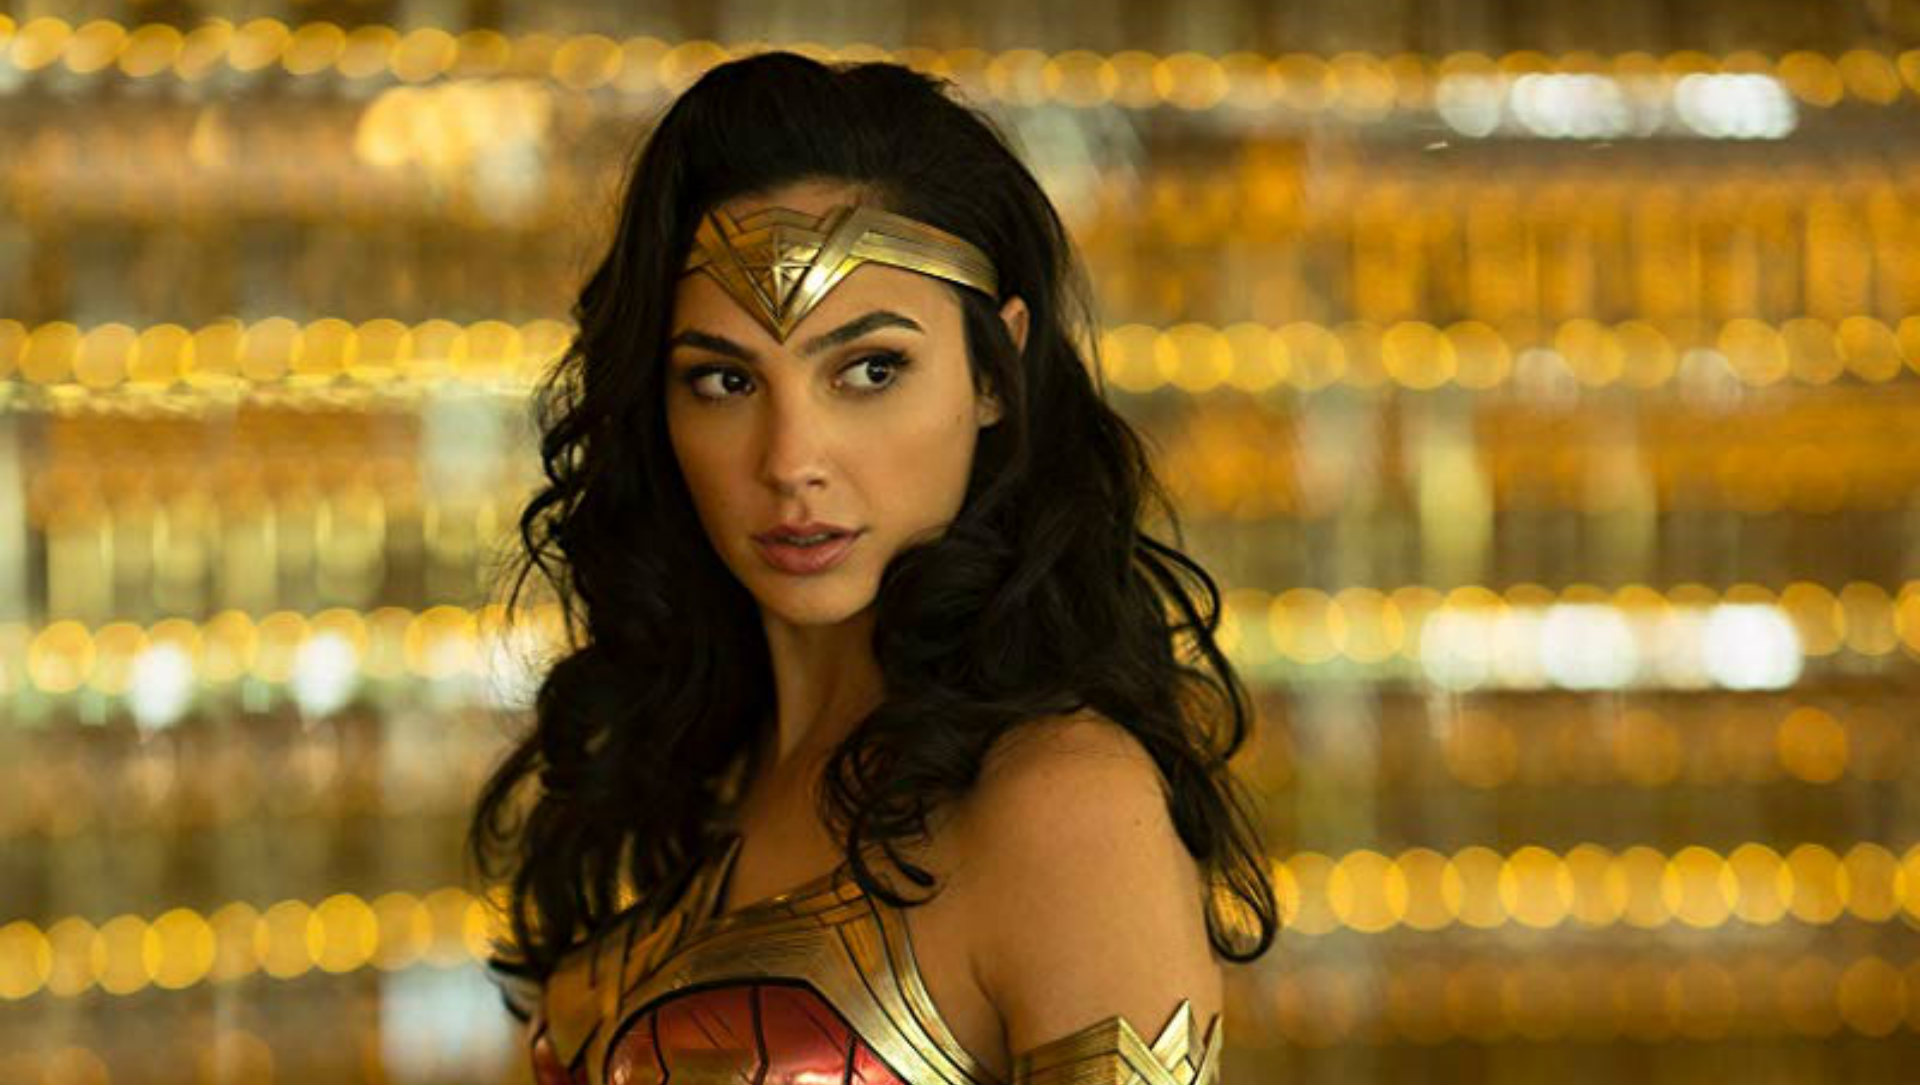 Diana Prince Goes '80s Chic in Wonder Woman 1984 Trailer